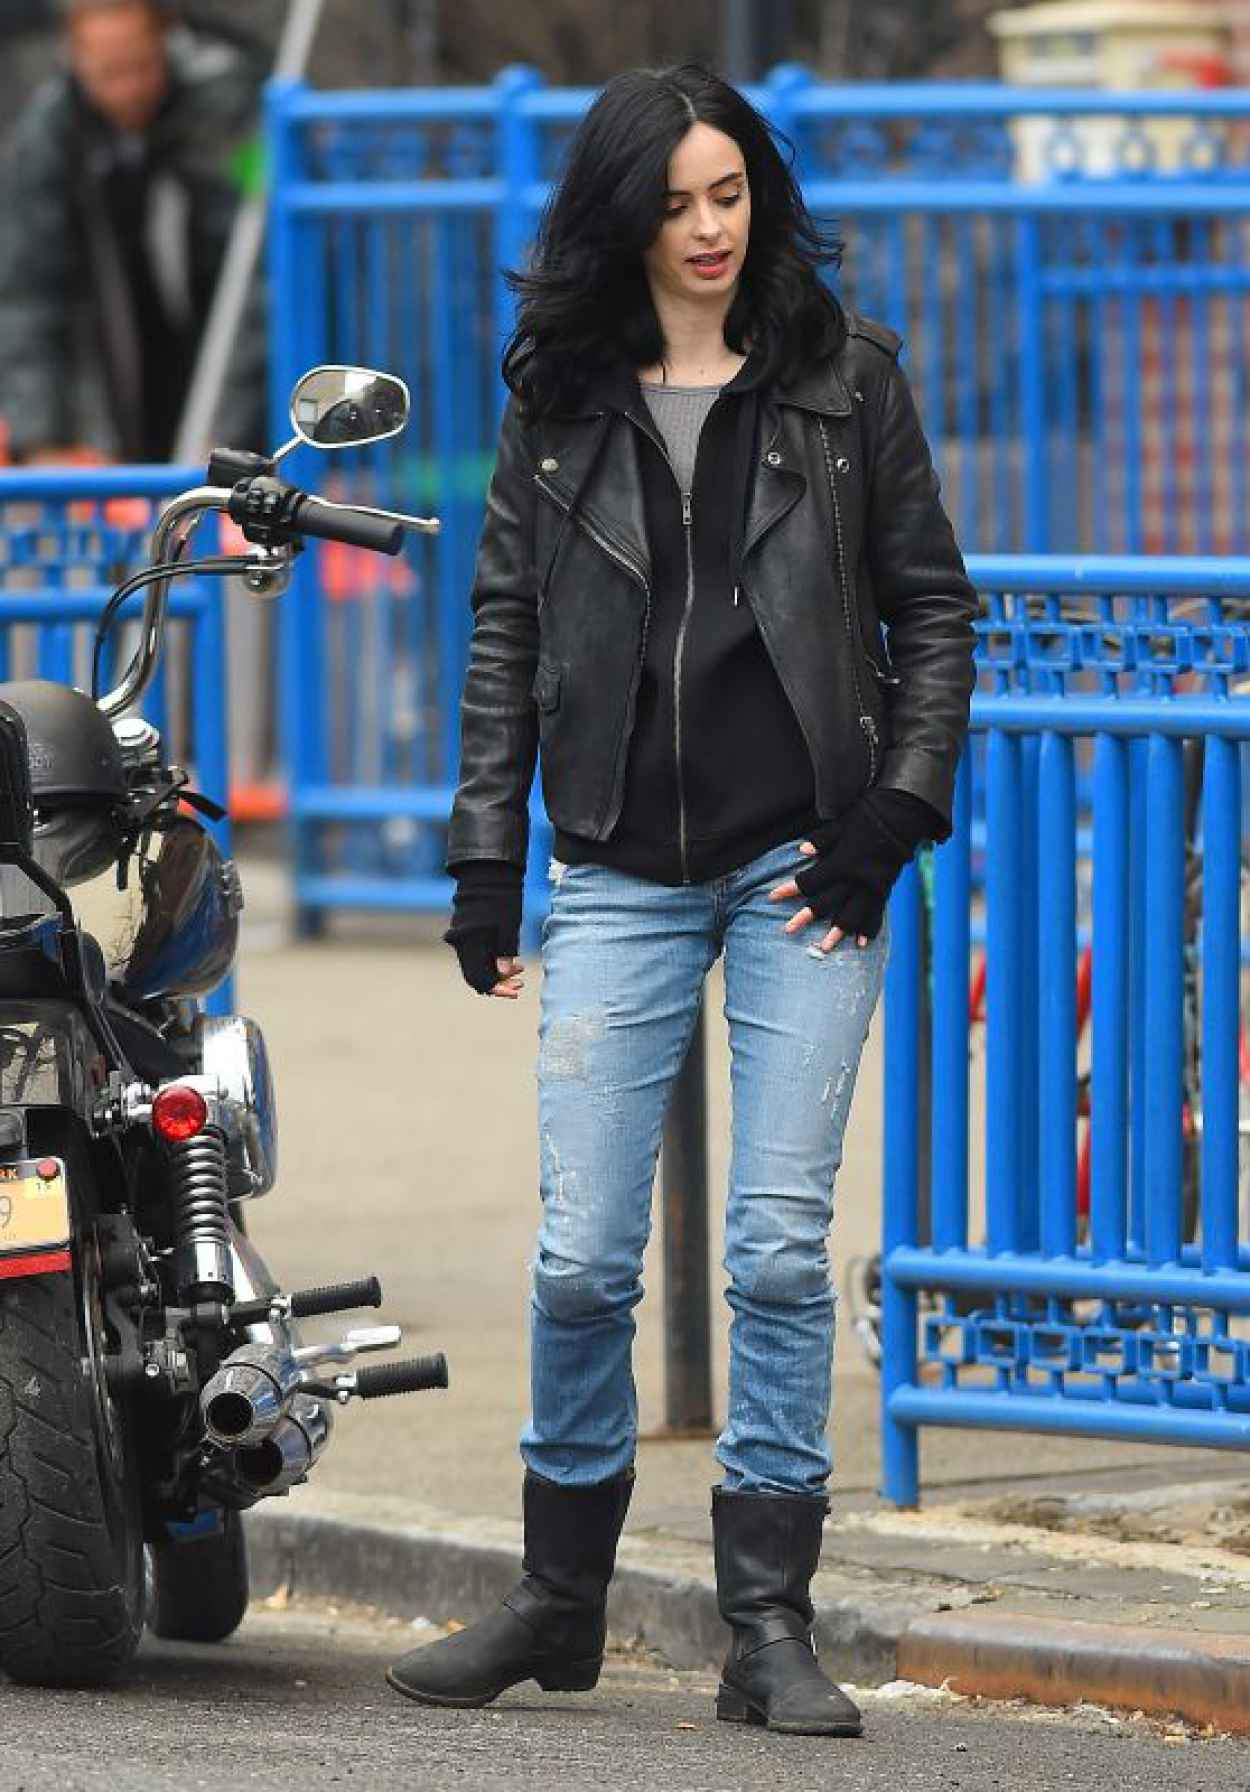 Krysten Ritter On the Set of A.K.A. Jessica Jones in NYC, April 2015-1